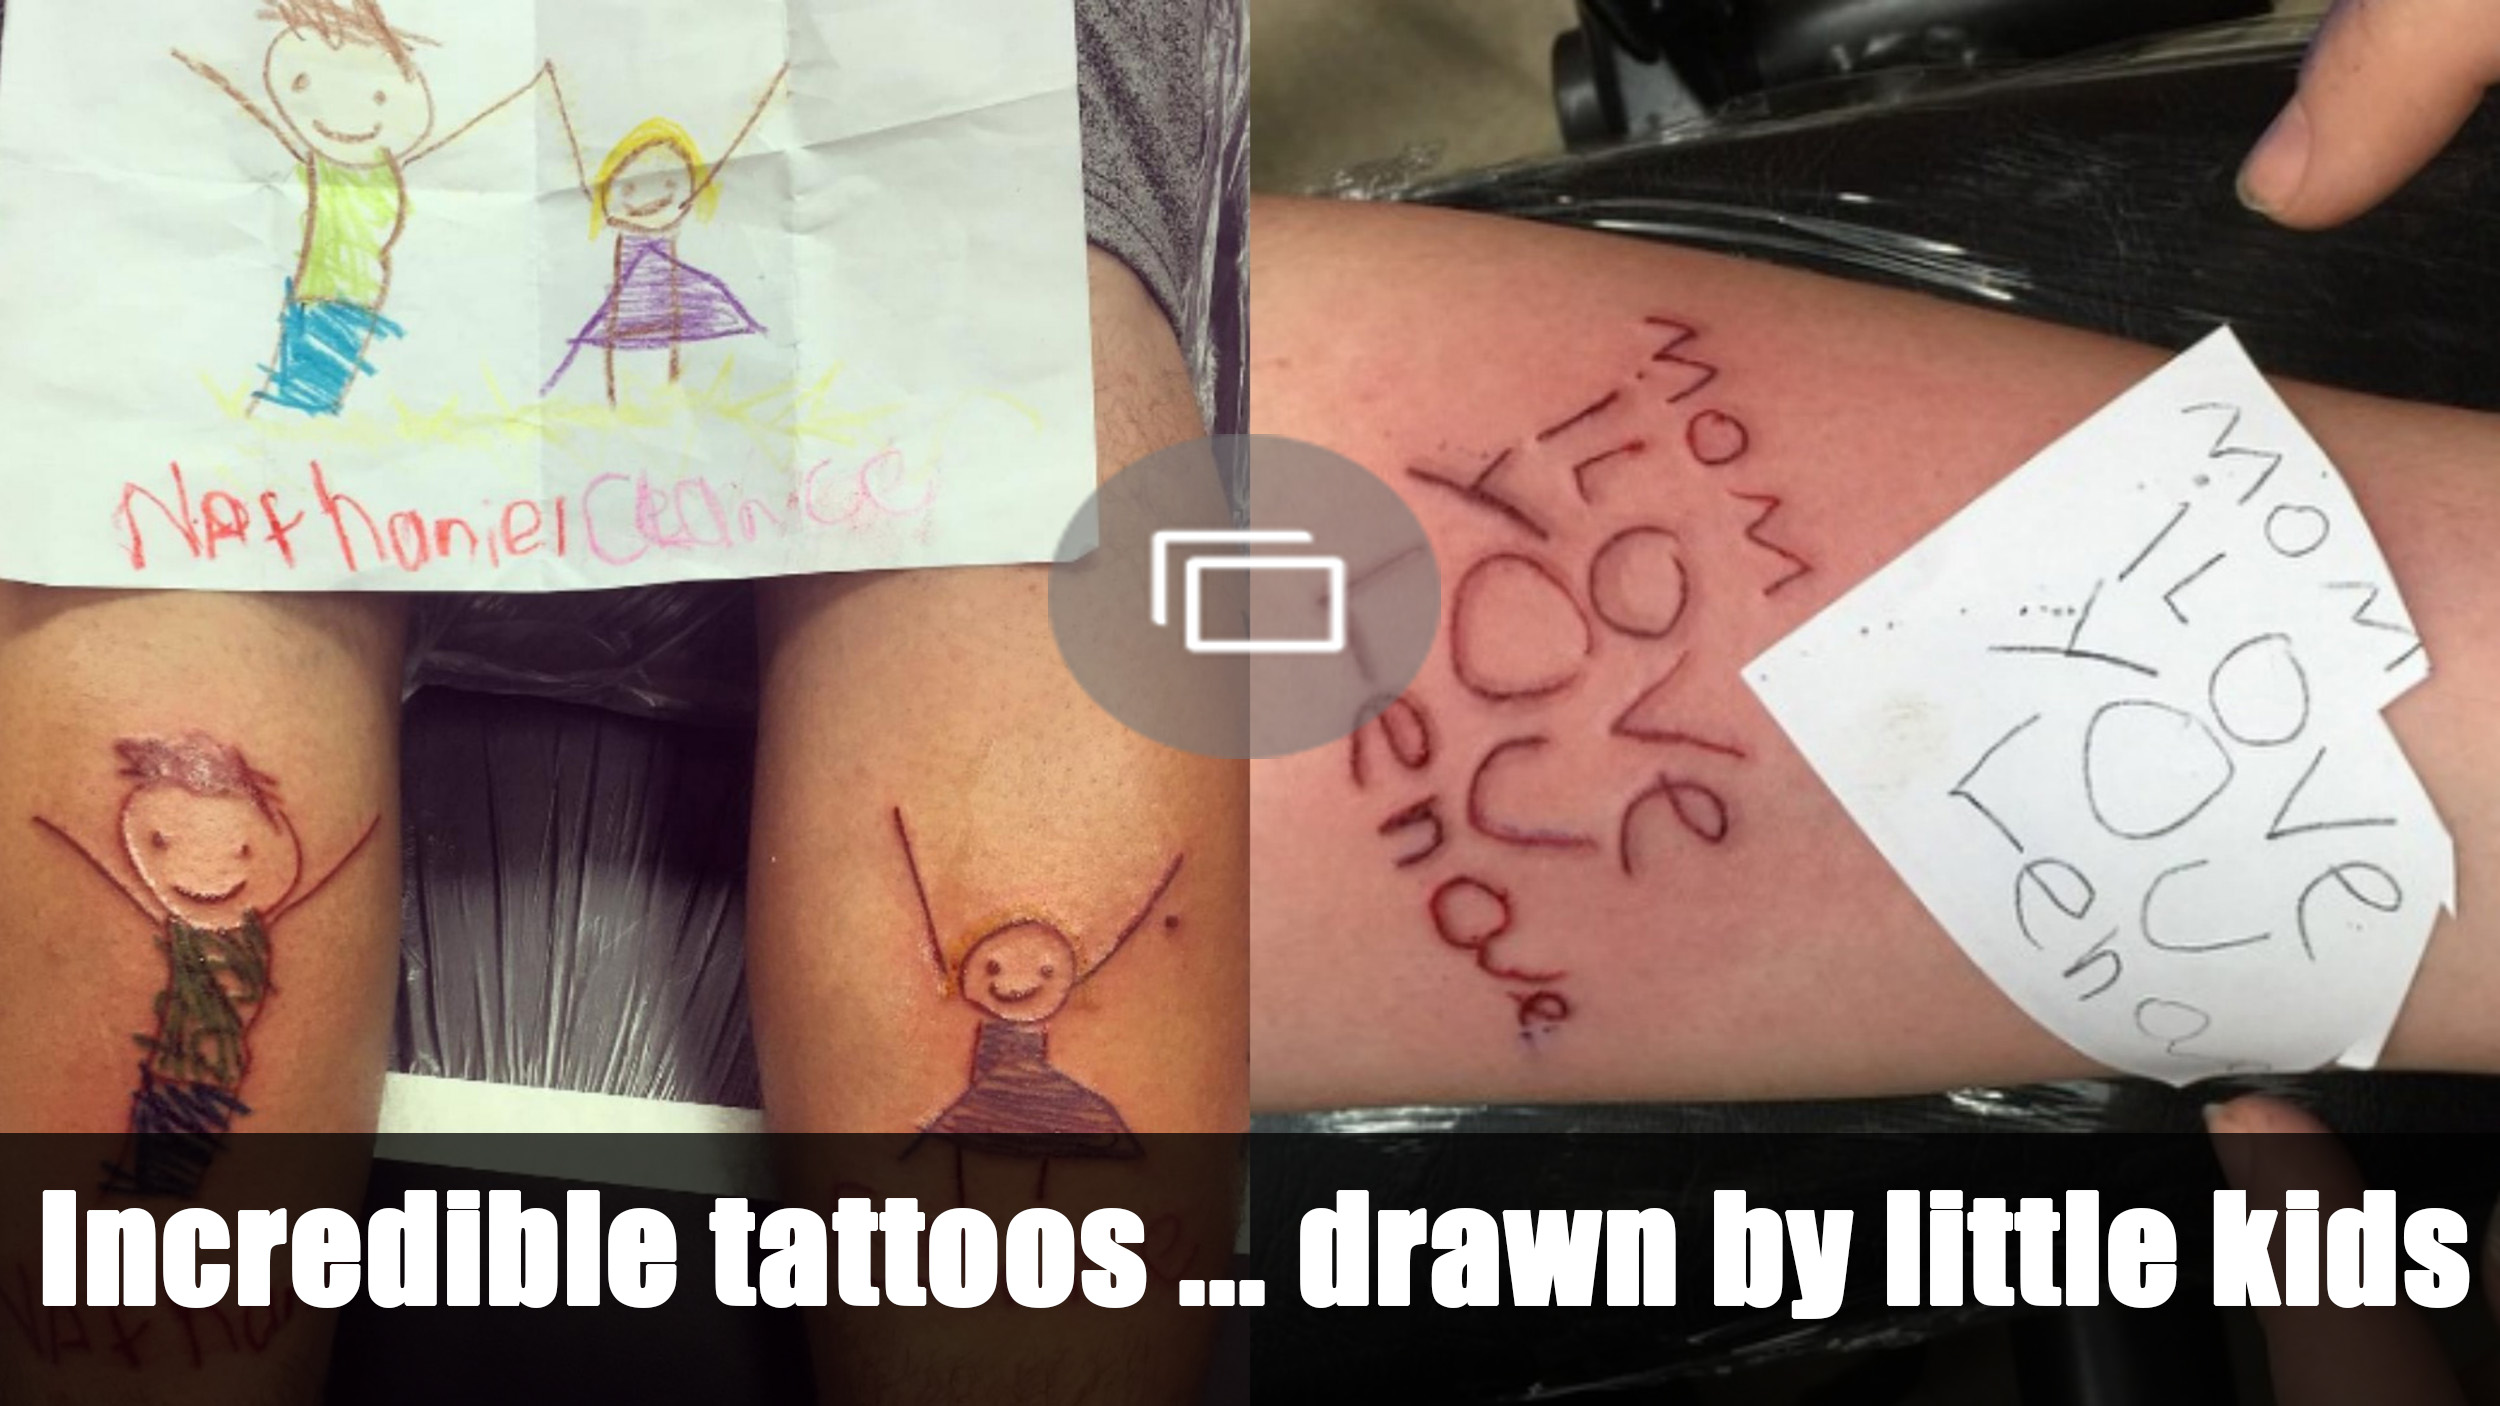 tattoos drawn by kids